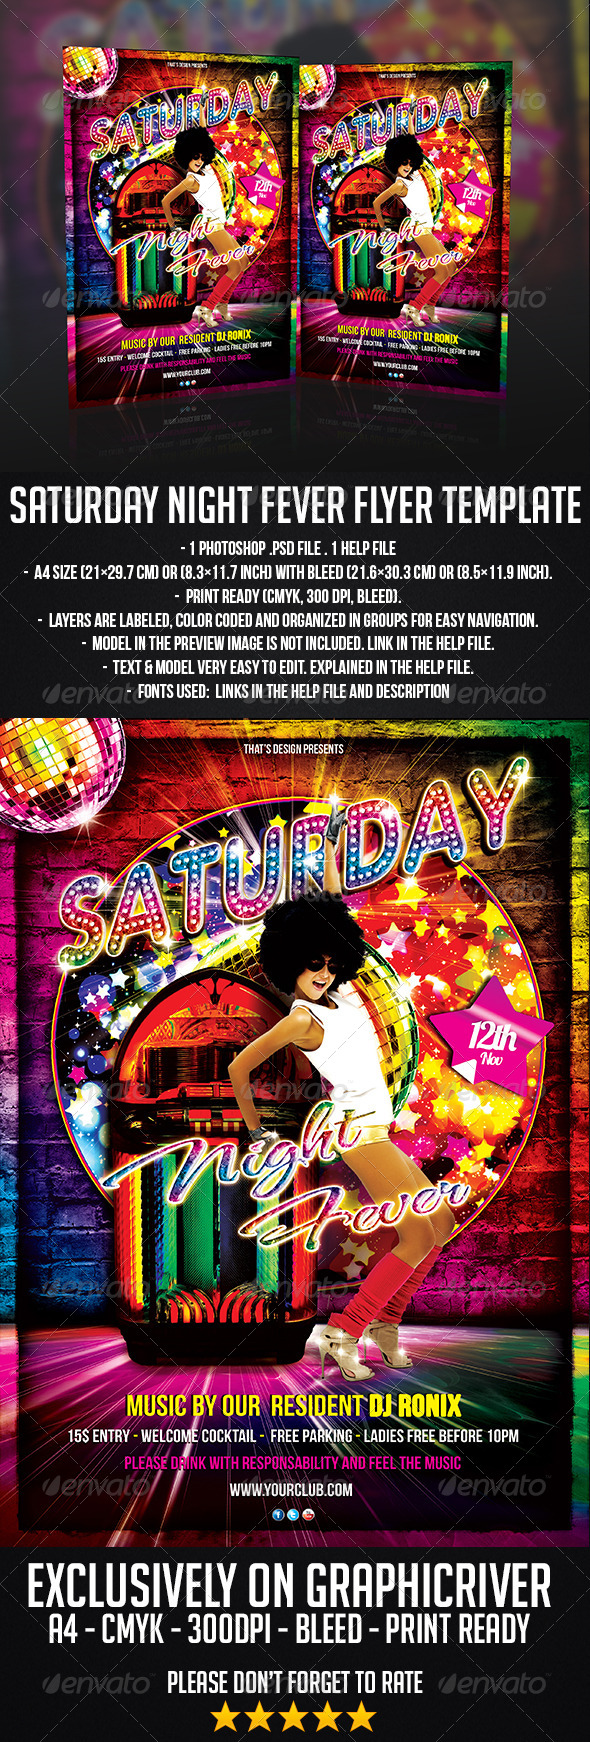 Saturday Night Fever Flyer Template | GraphicRiver